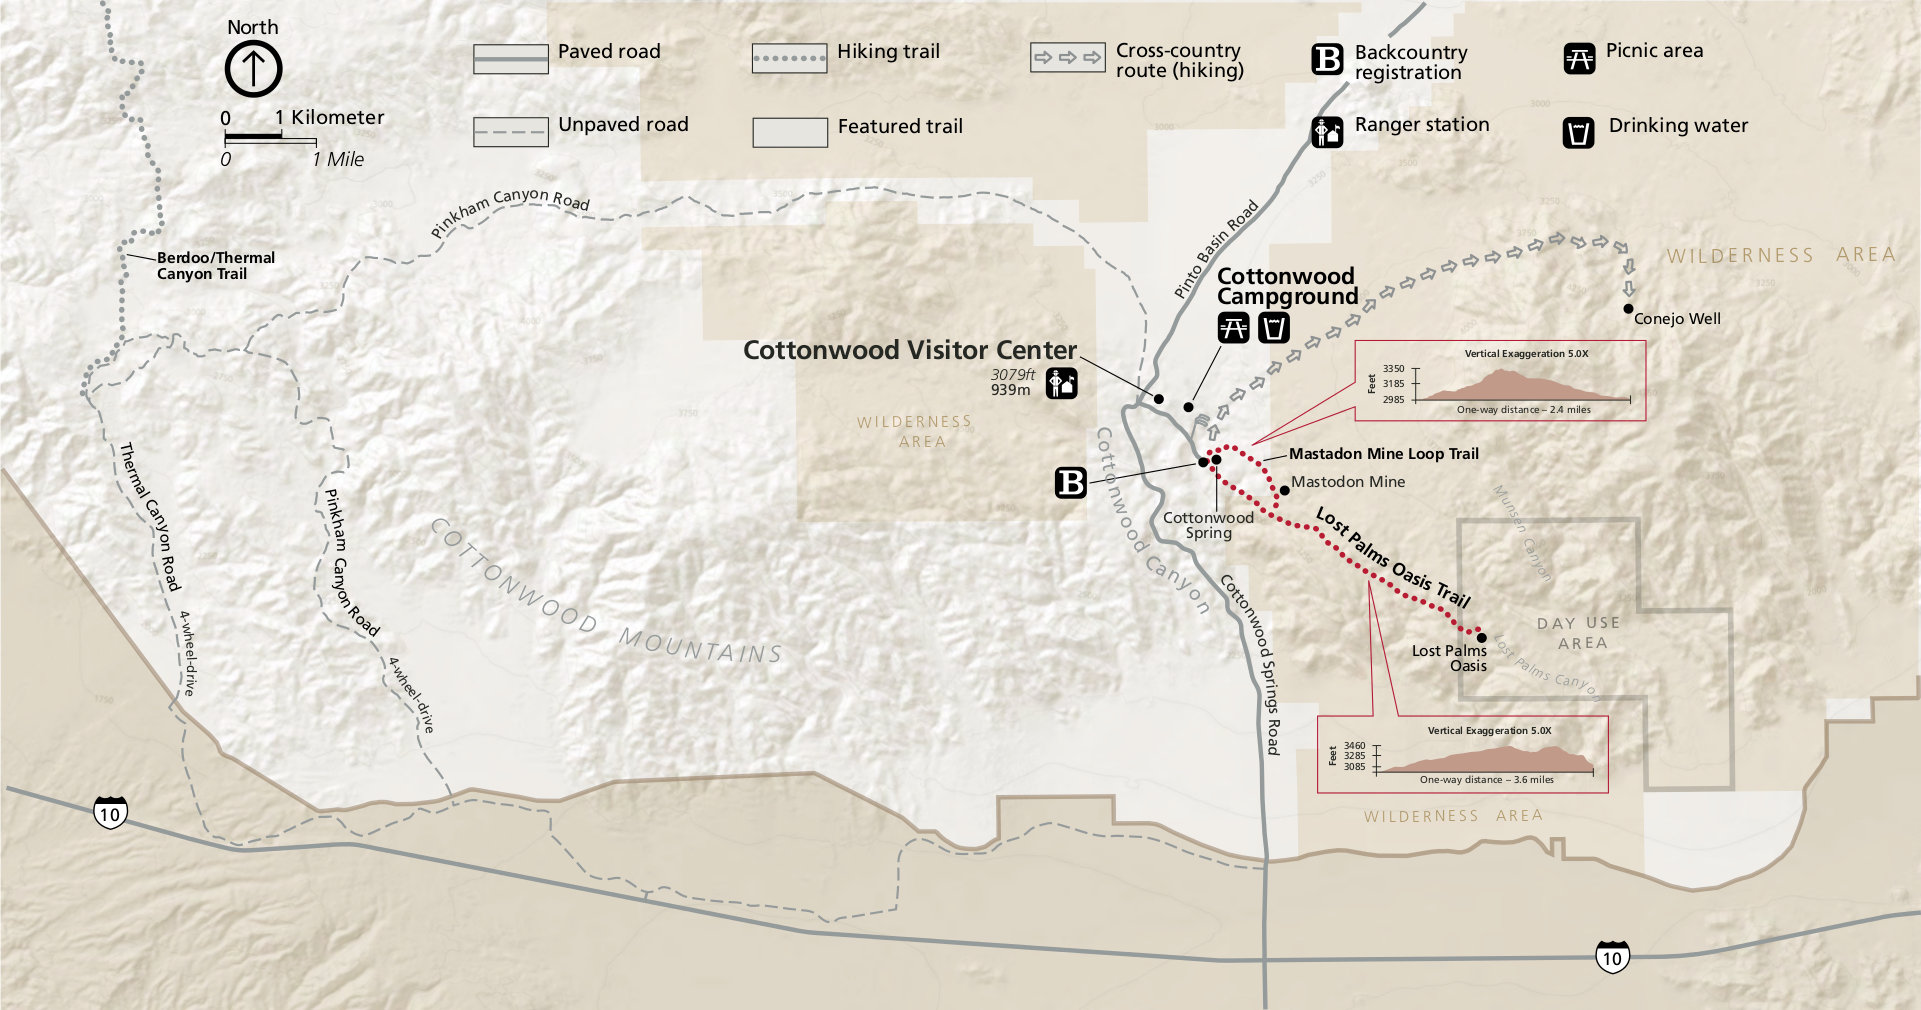 joshua tree backcountry registration board maps. joshua tree maps  npmapscom  just free maps period